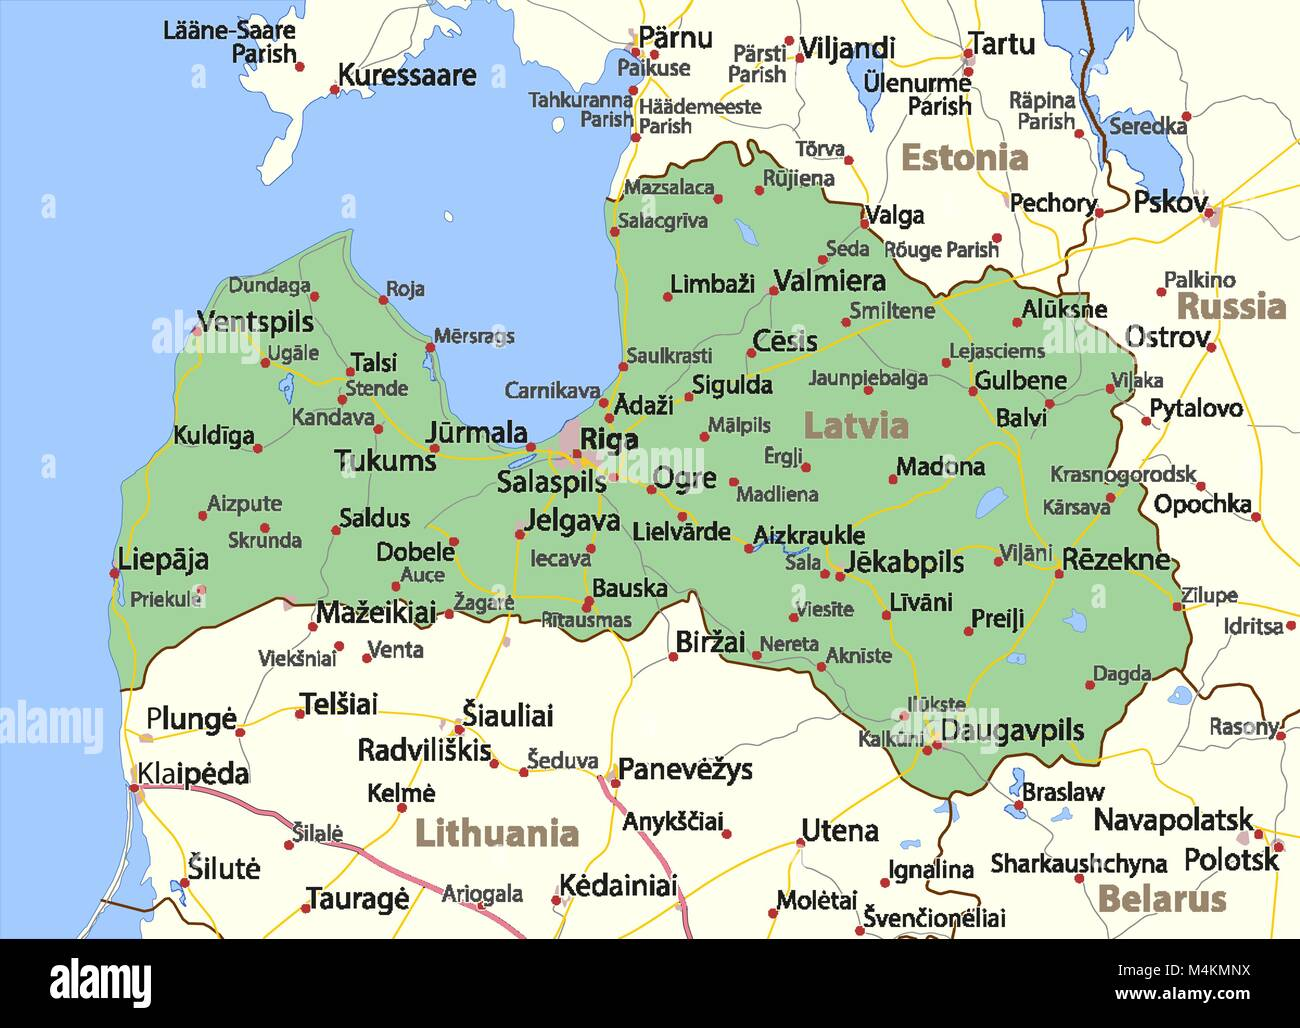 Map of Latvia Shows country borders urban areas place names and